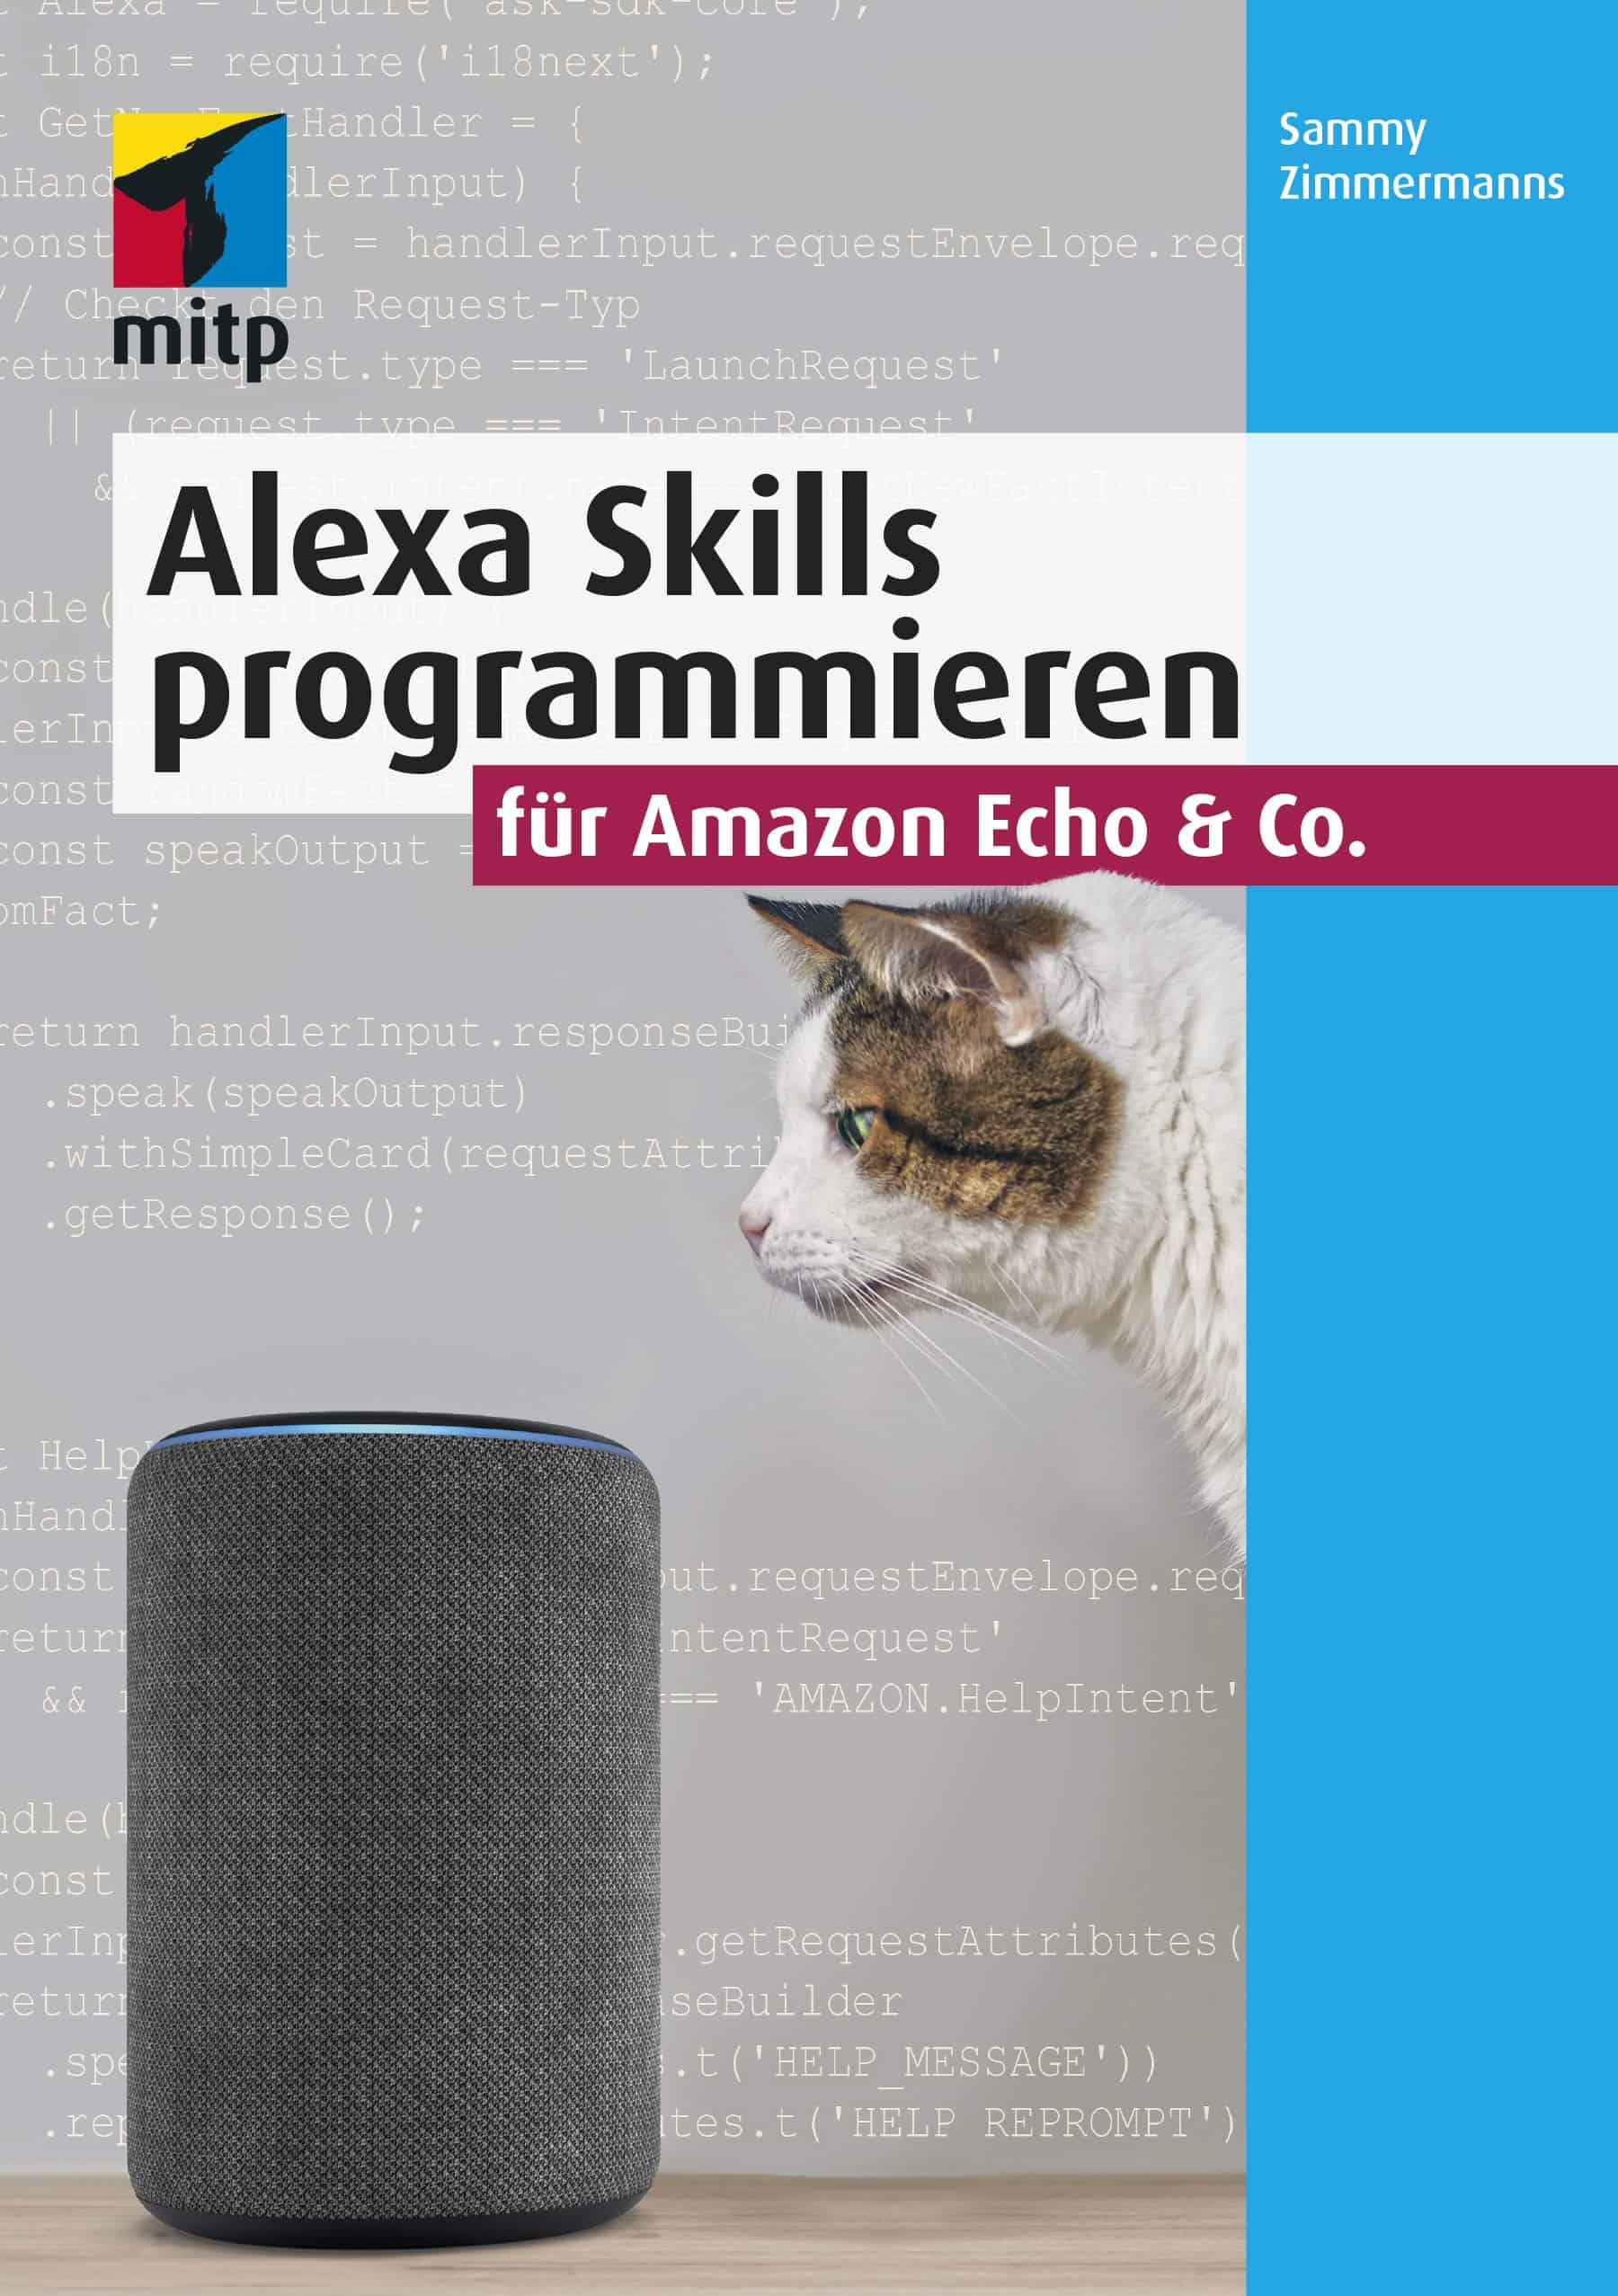 Alexa Skills programmieren für Amazon Echo & Co.